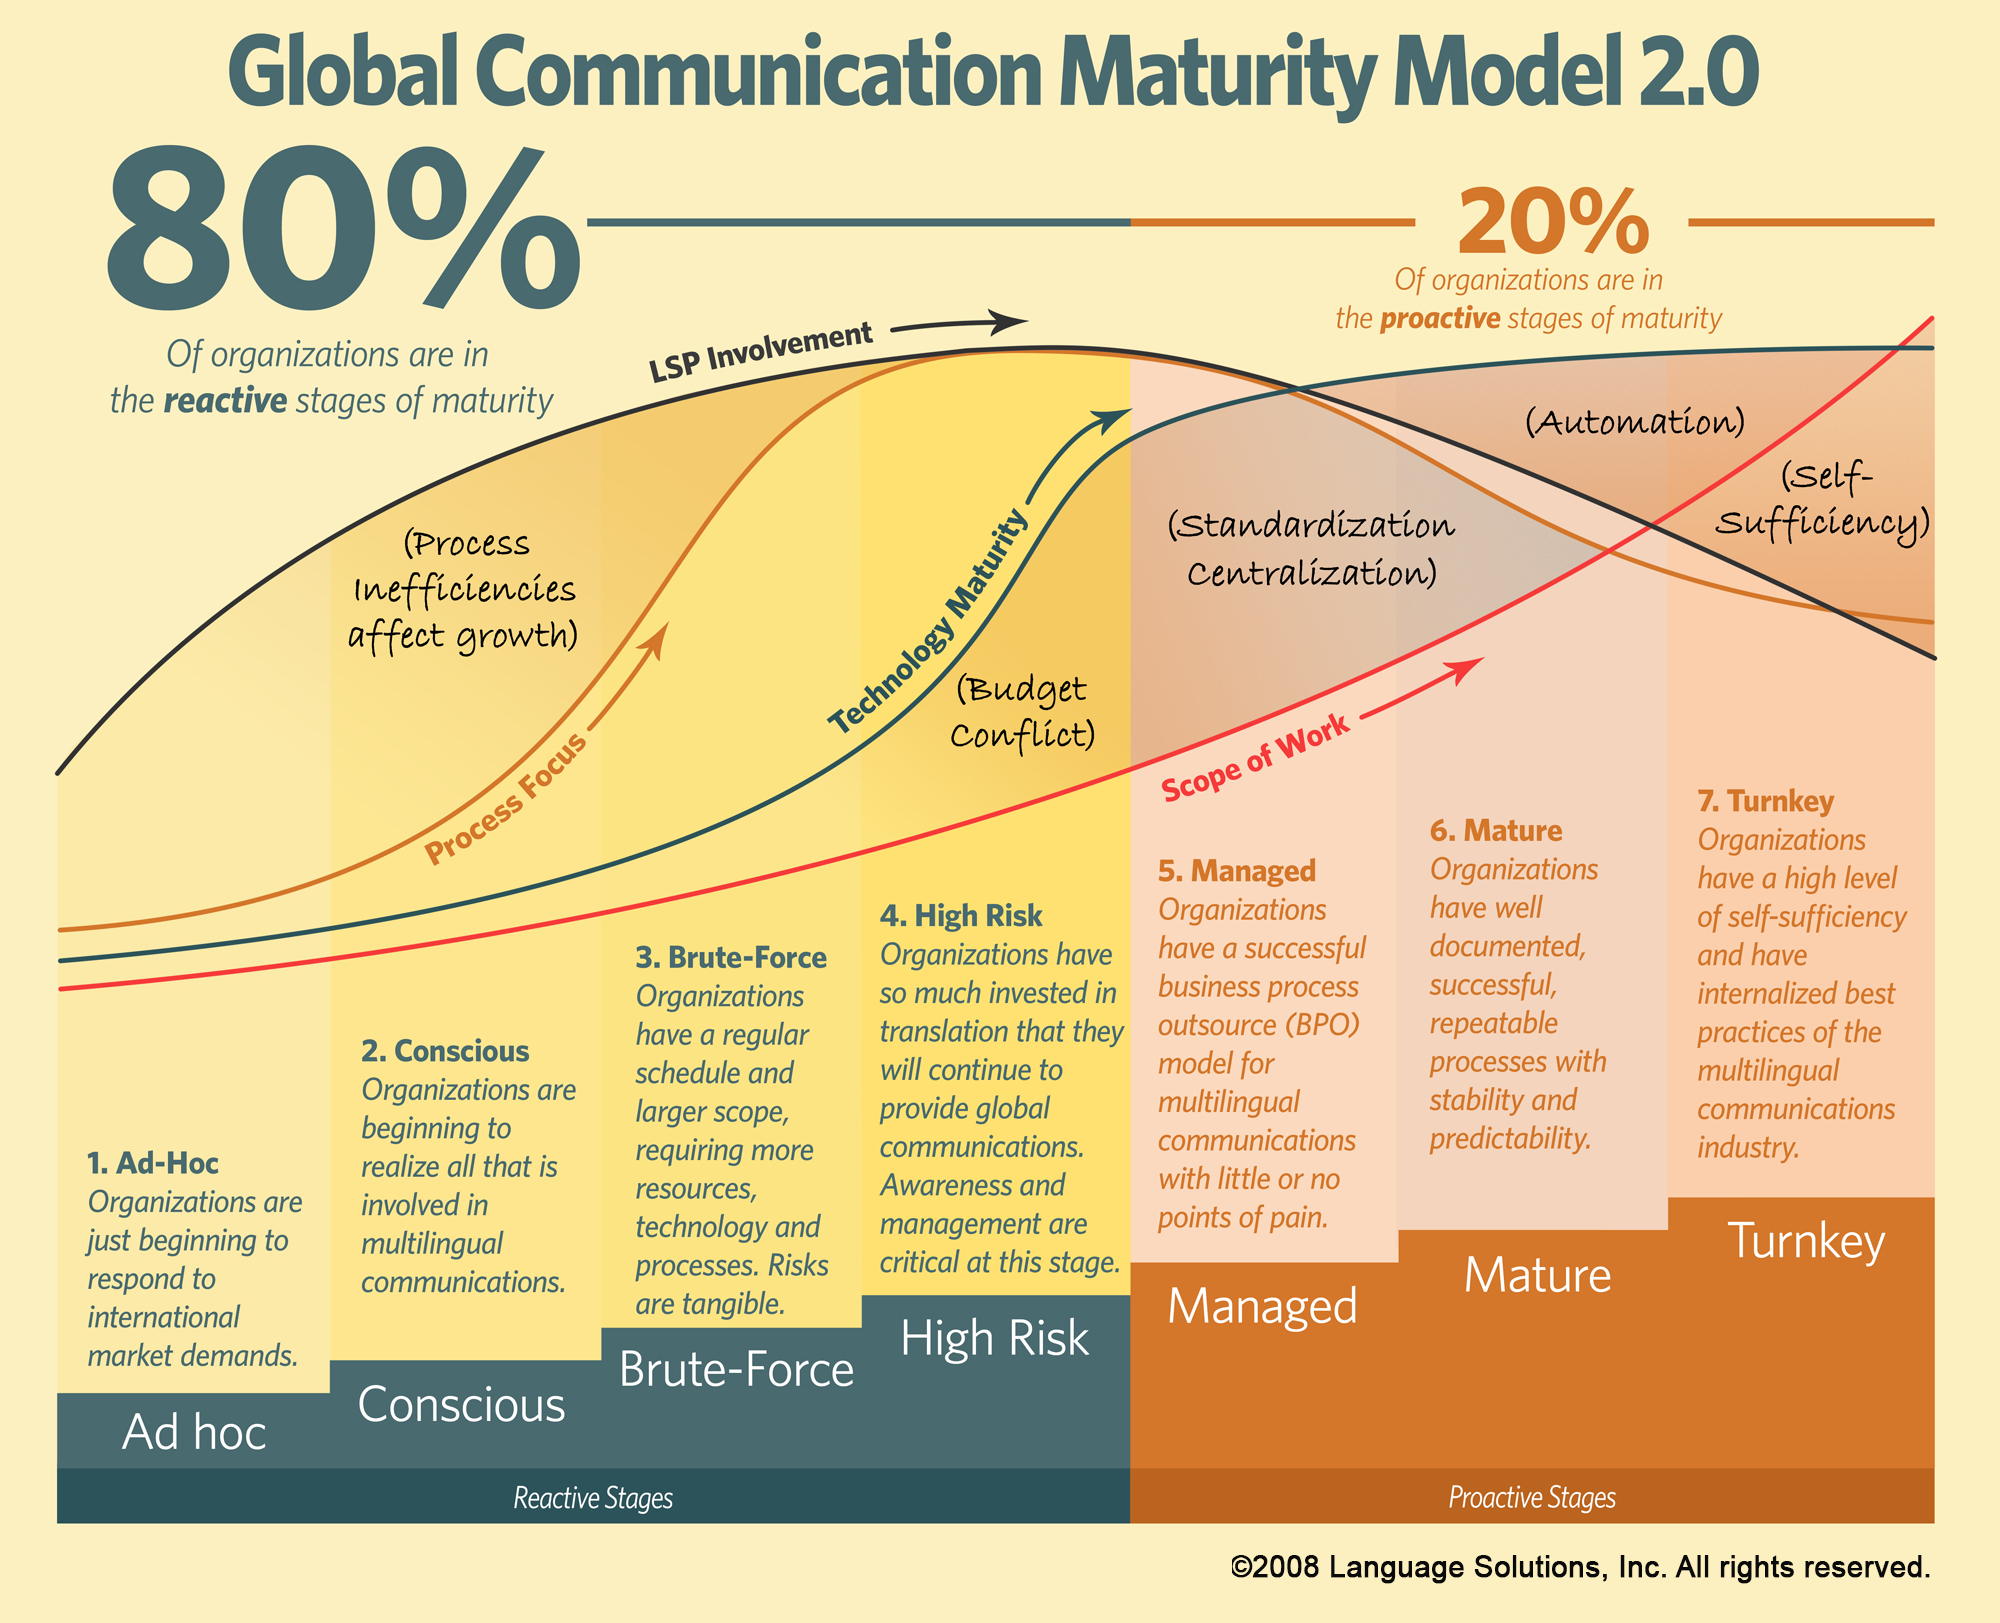 Global Communications Maturity Model for Localization Maturity assessment